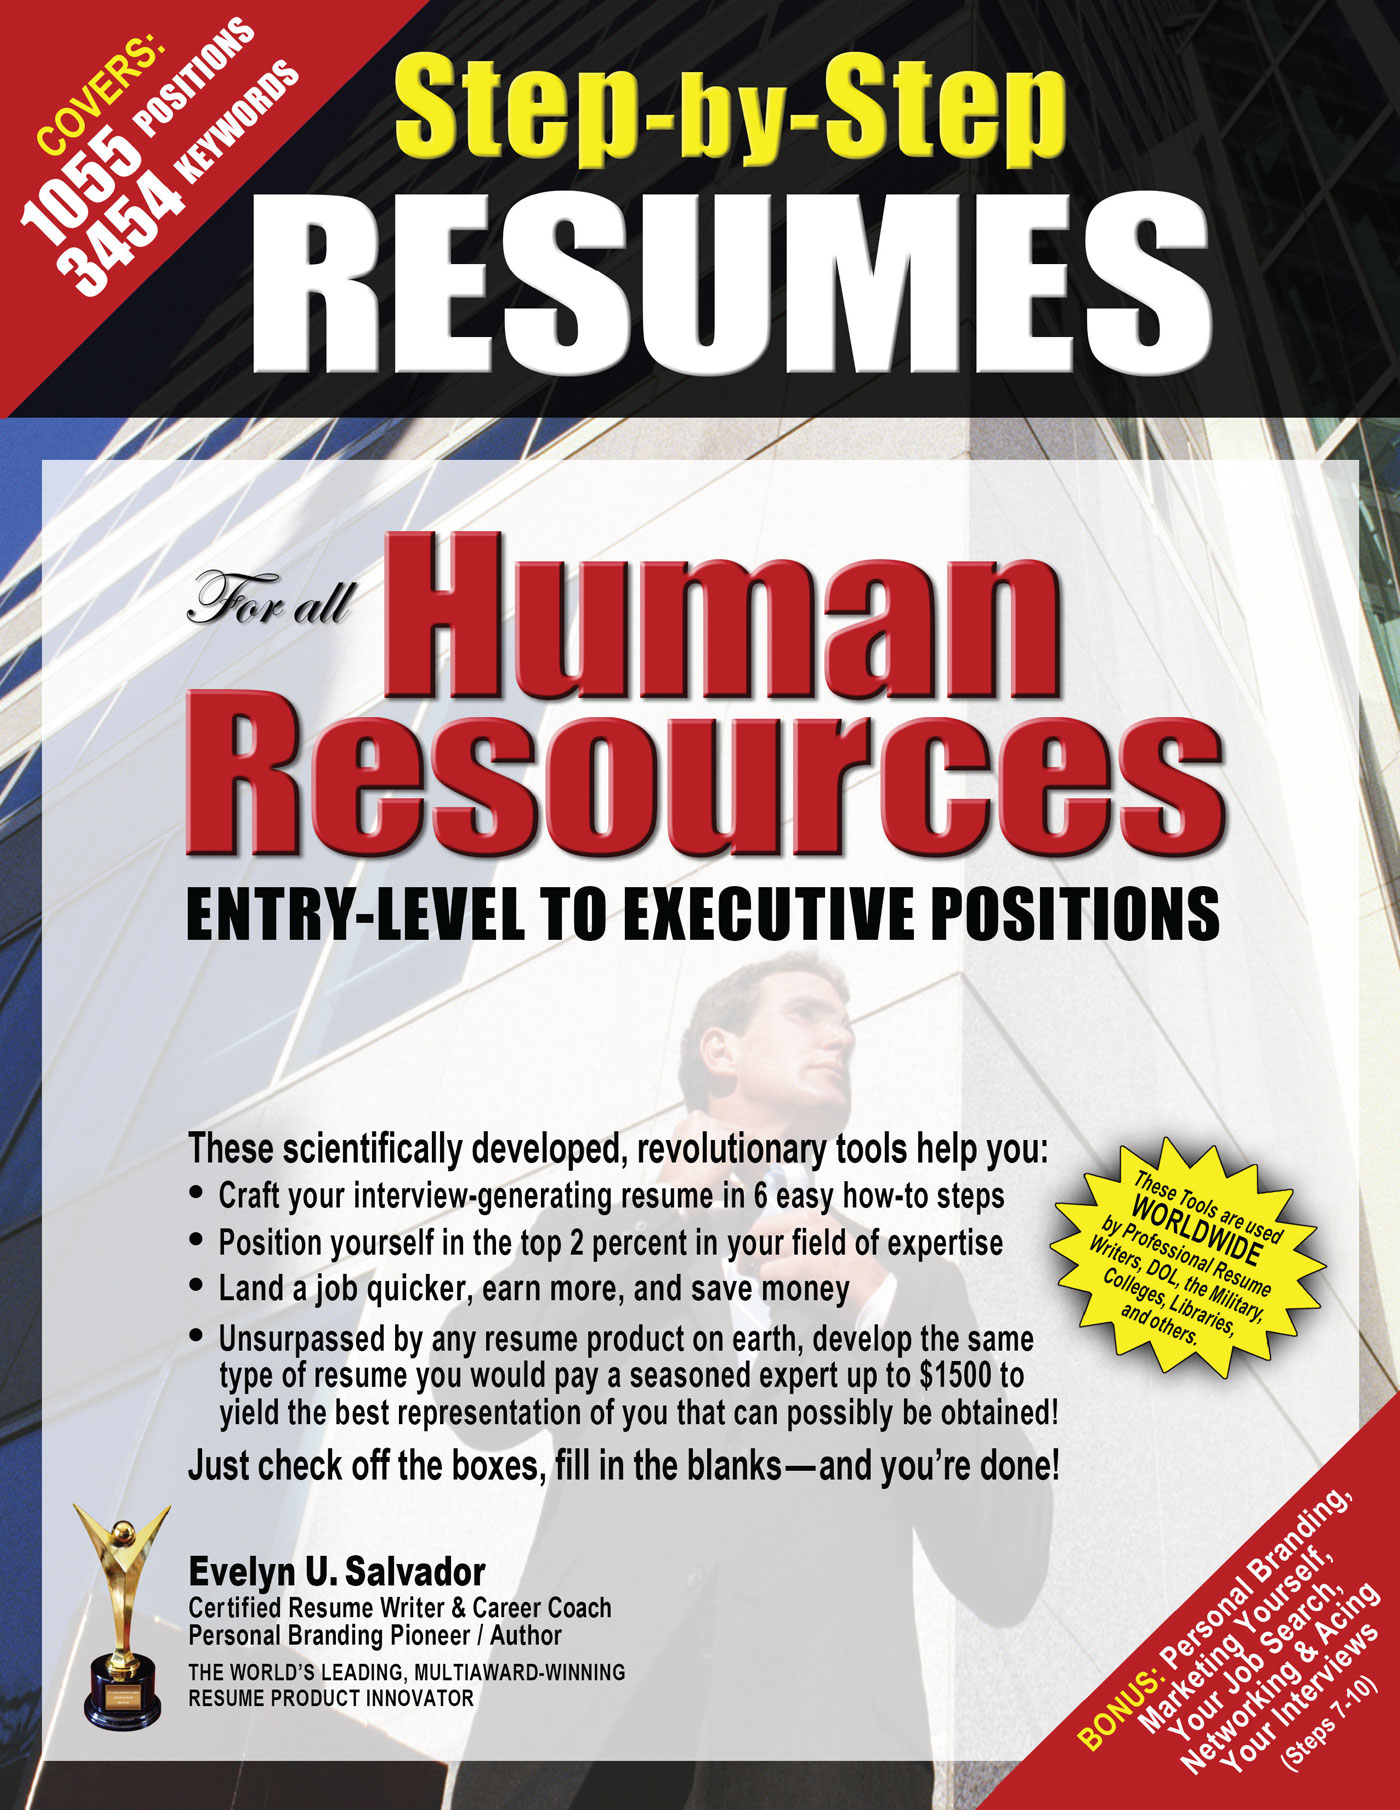 step by step resume guide